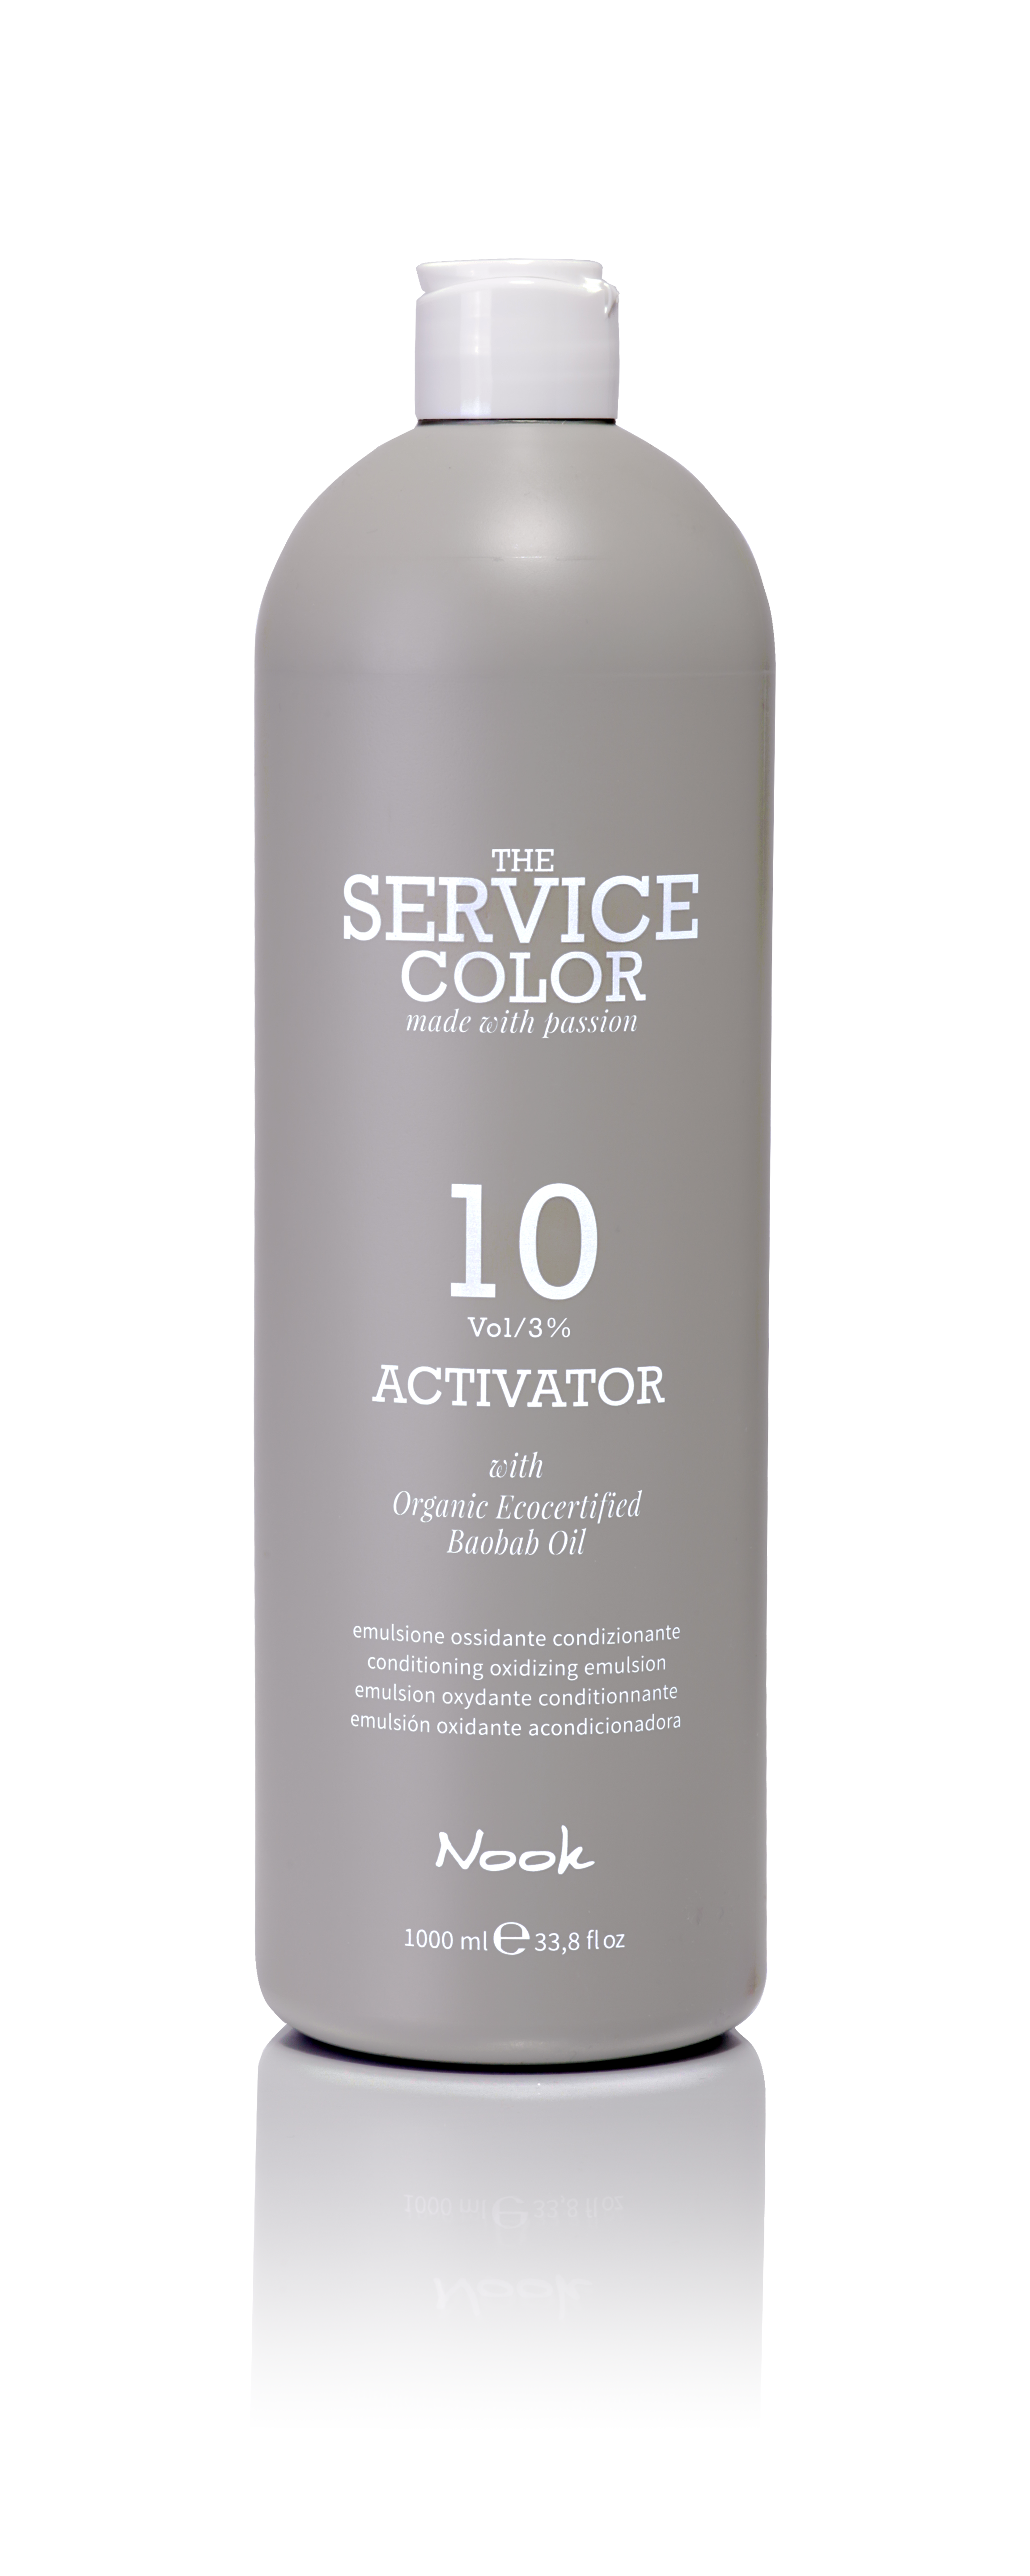 NOOK Активатор 3% (10vol) / ACTIVATOR THE SERVICE COLOR 1000мл the complete voodoo vol 3